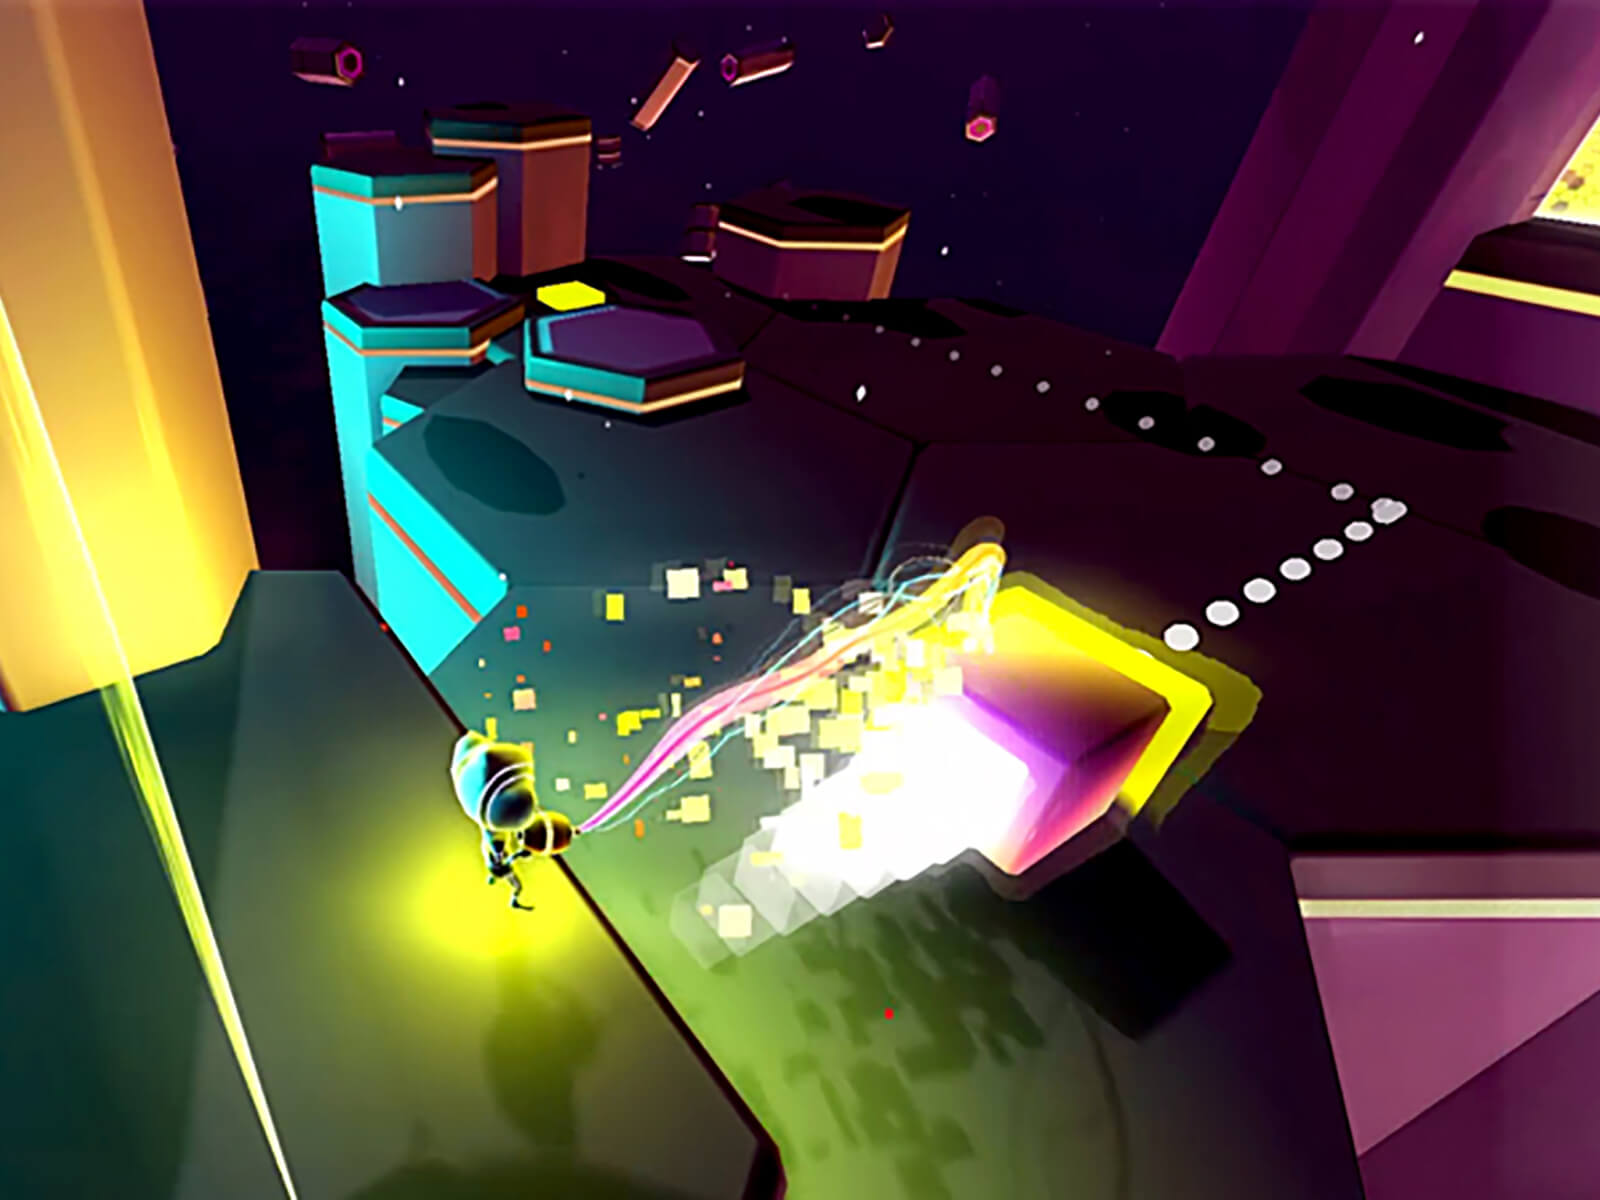 Screenshot from DigiPen (Singapore) game Chrono Disfunglement in which a helmet-clad avatar shoots particle beams at a large purple cube.